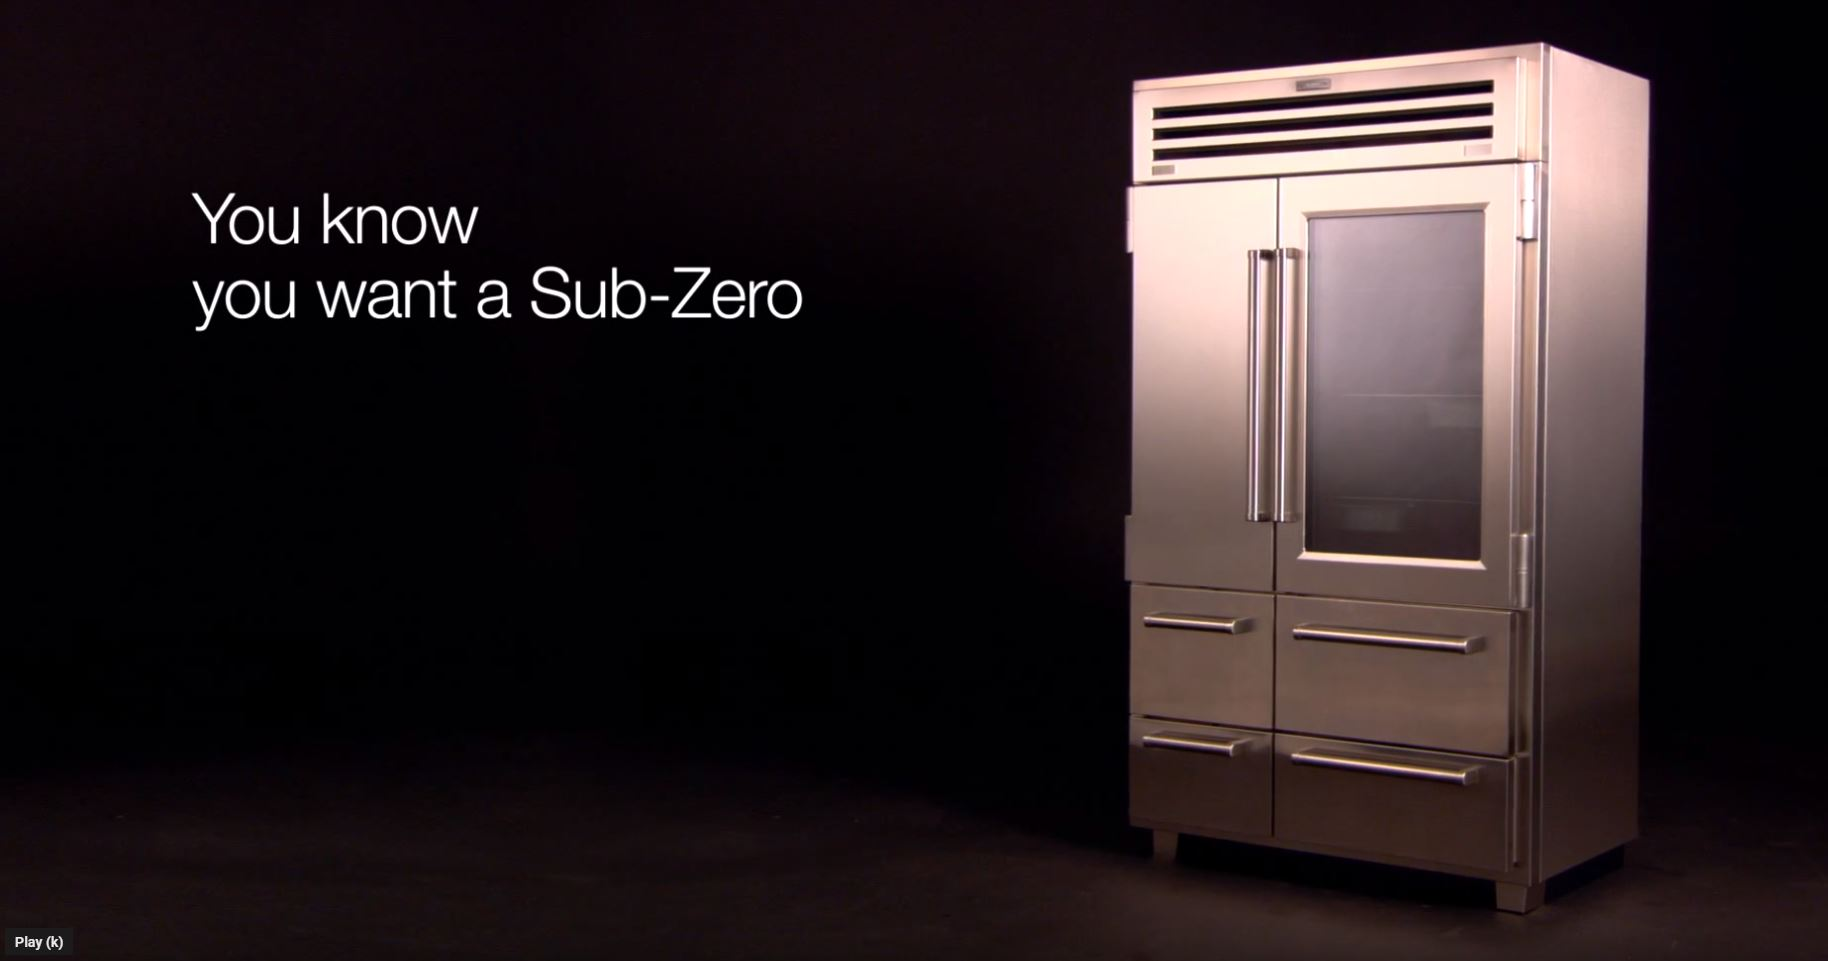 The Sub-Zero Difference Video